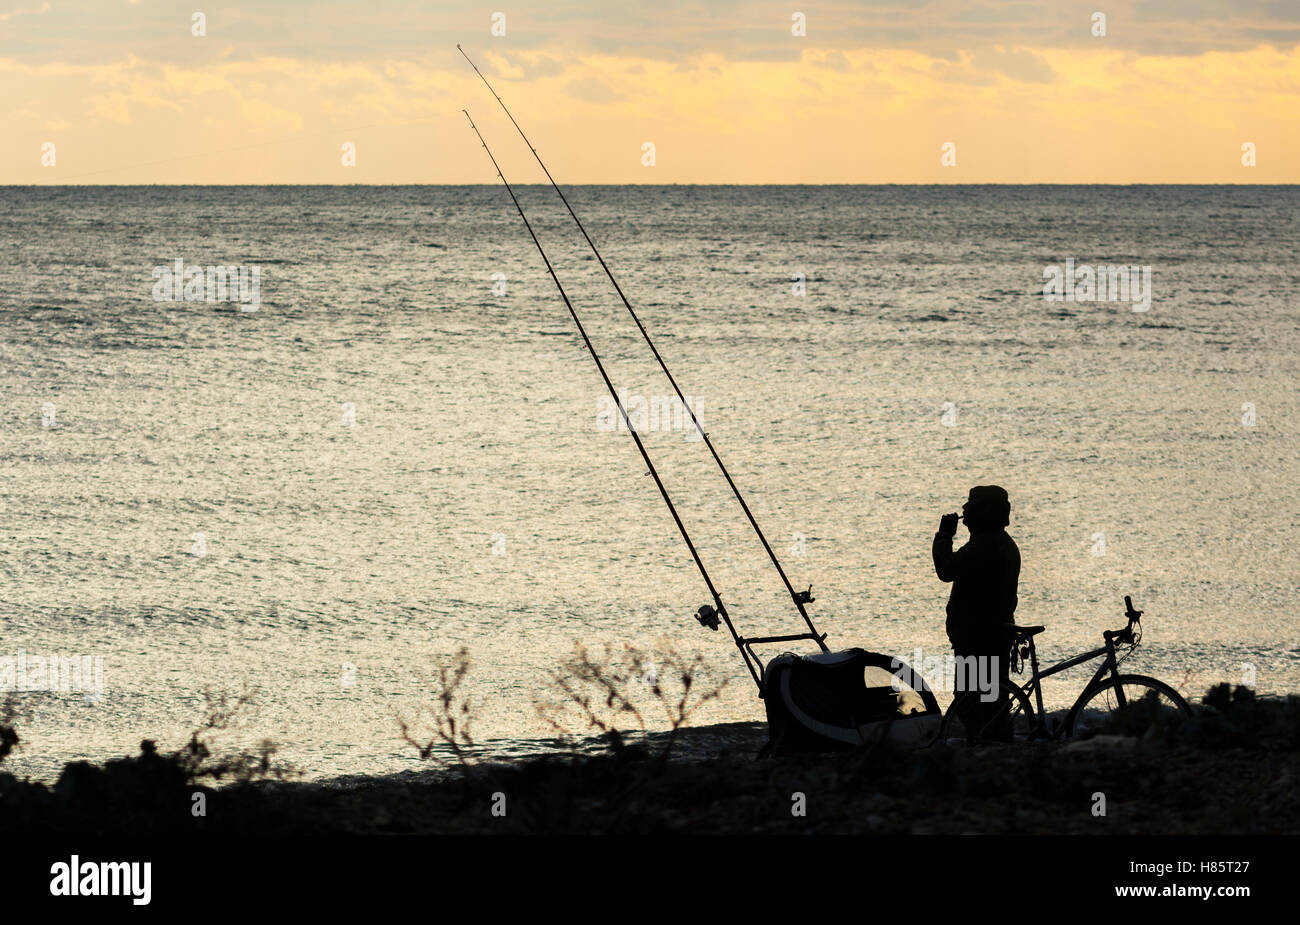 Silhouette of someone fishing at sea. - Stock Image